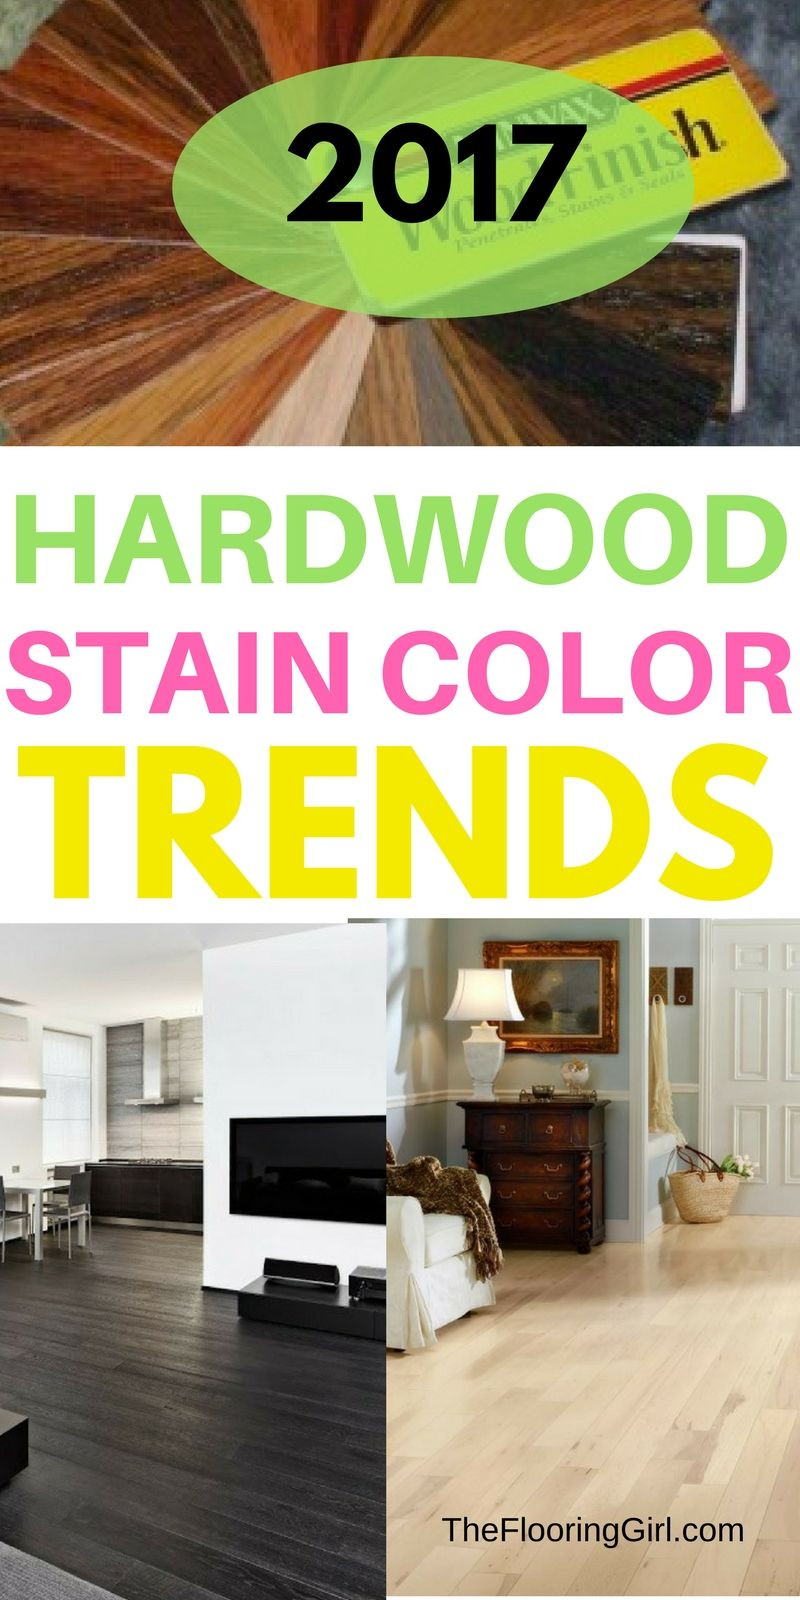 unfinished hardwood flooring suppliers of hardwood flooring stain color trends 2018 more from the flooring within hardwood flooring stain color trends for 2017 hardwood colors that are in style theflooringgirl com